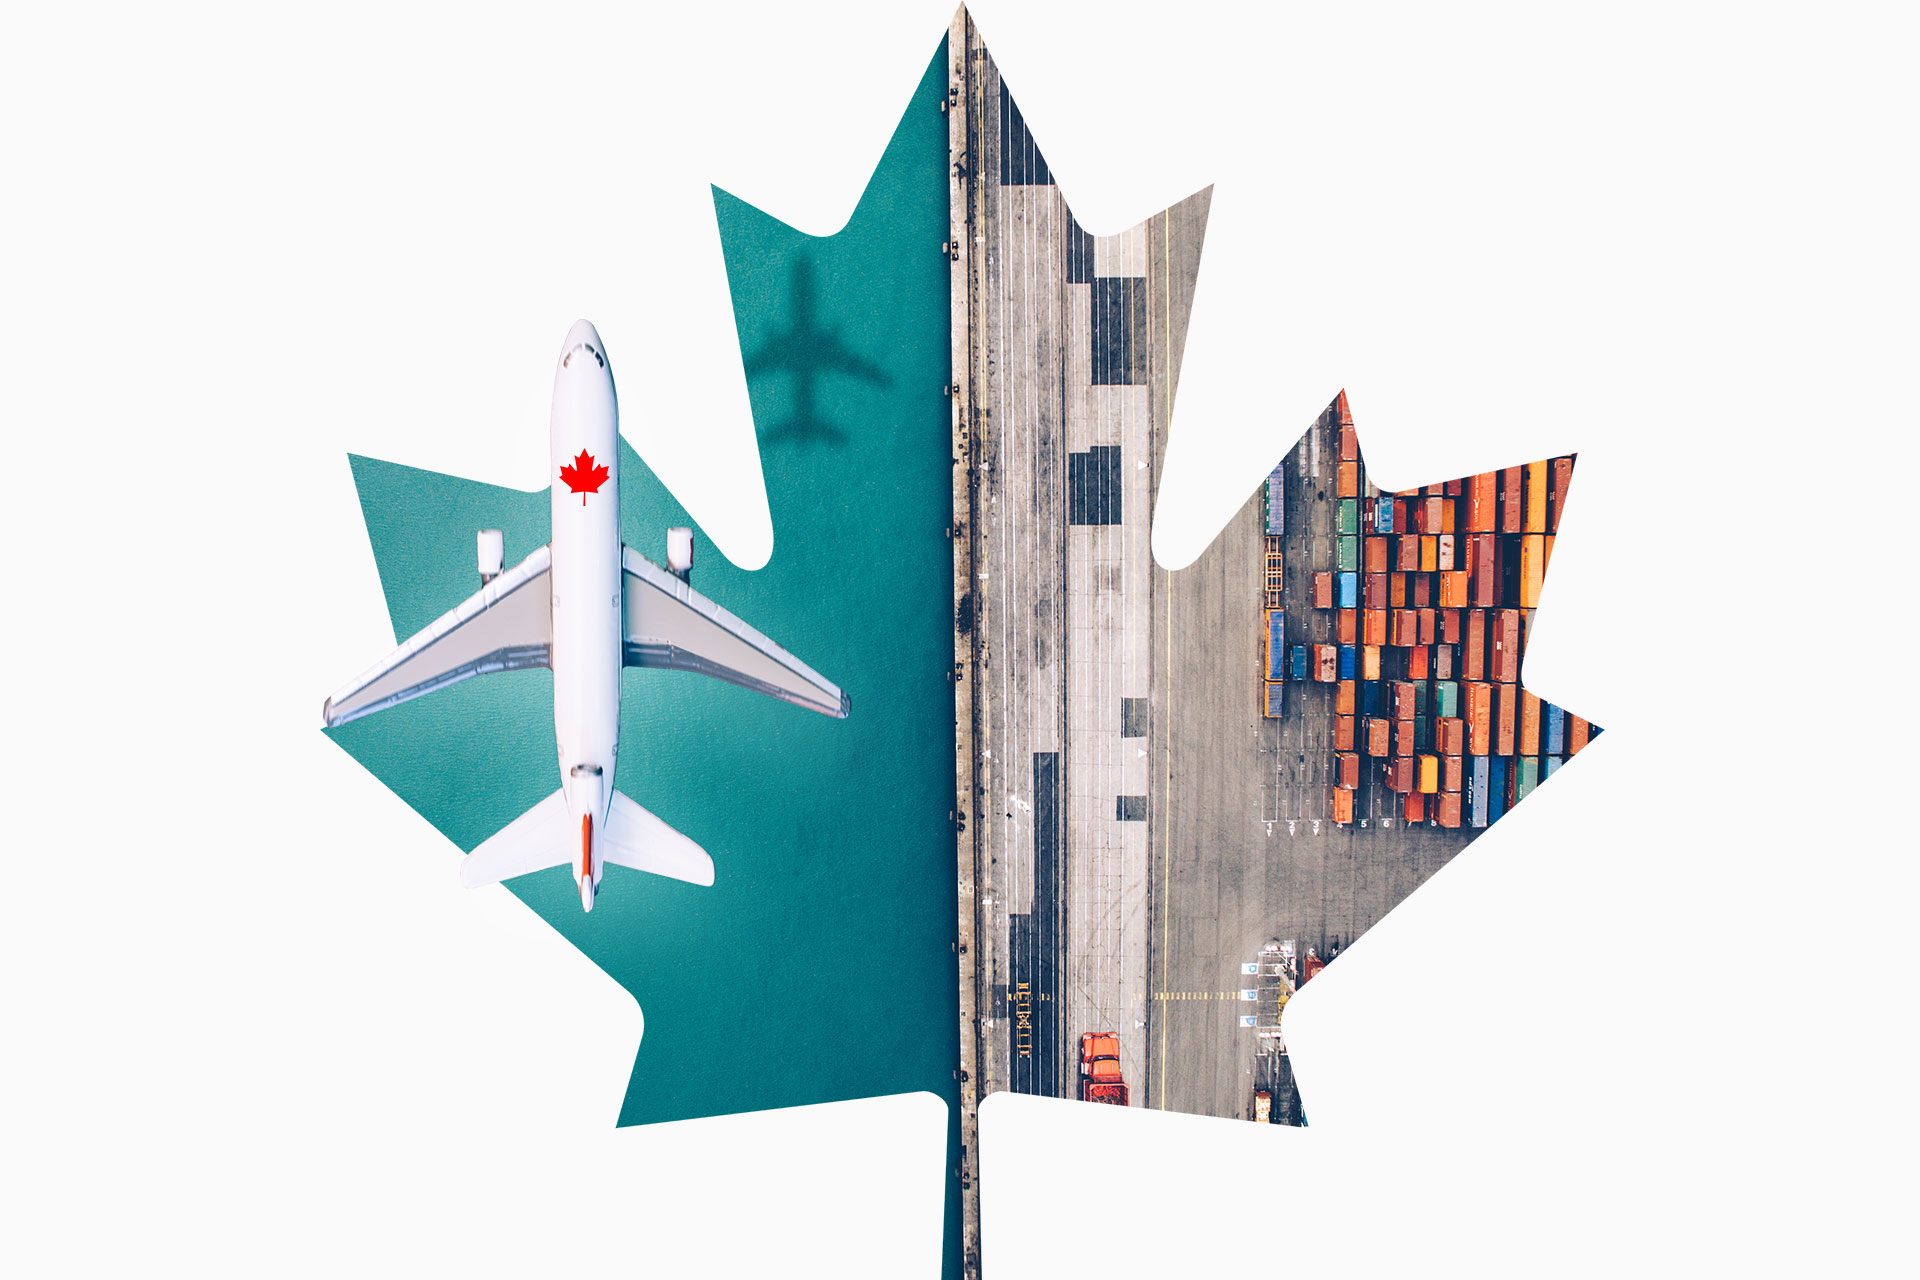 We care about Canada.  - That's why we offer the richest air content of any online booking tool in Canada. LEARN MORE